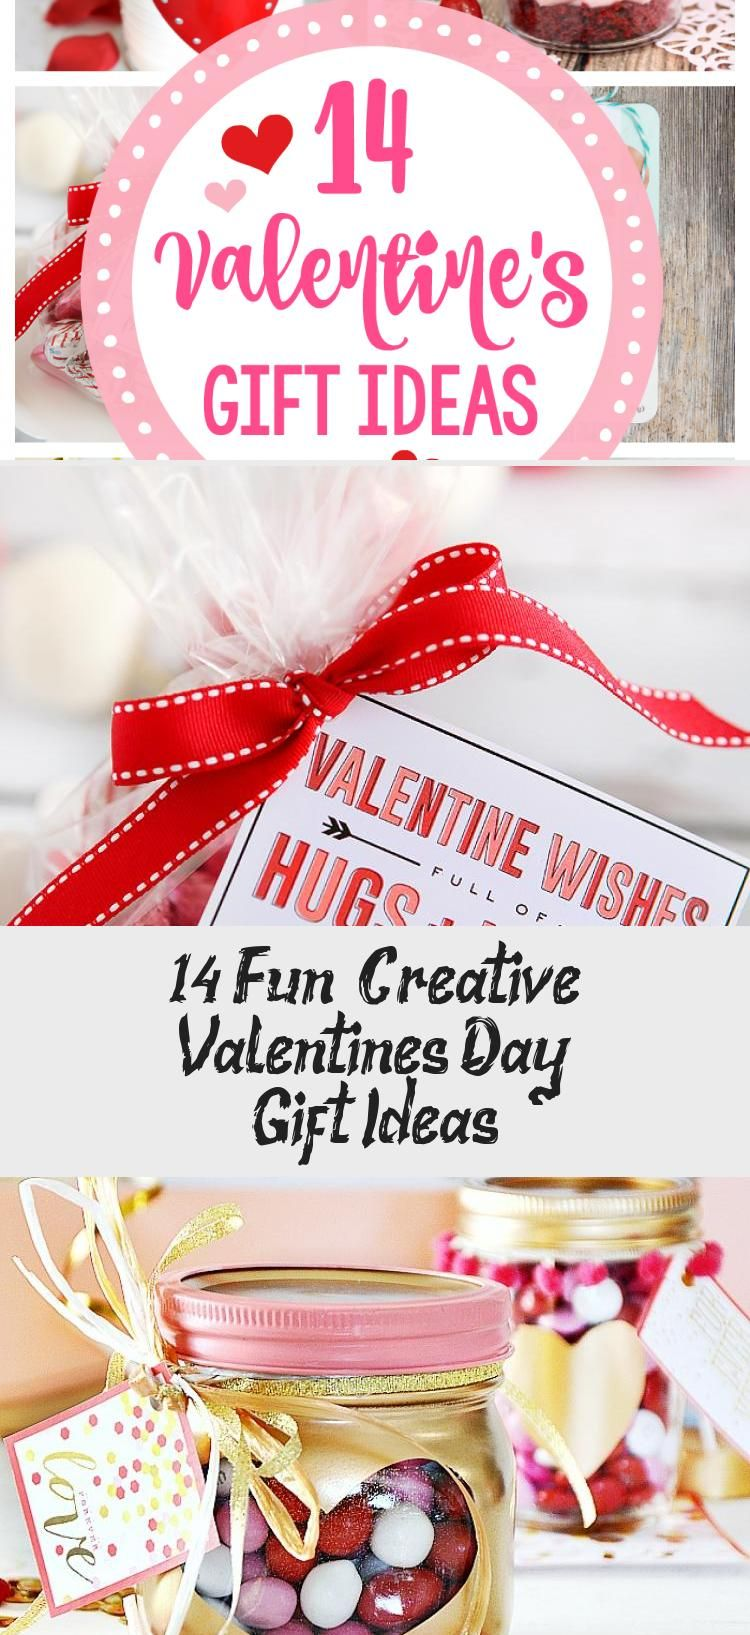 14 Fun Creative Valentine S Day Gift Ideas In 2020 Creative Valentines Gift Creative Valentines Cute Valentines Day Gifts